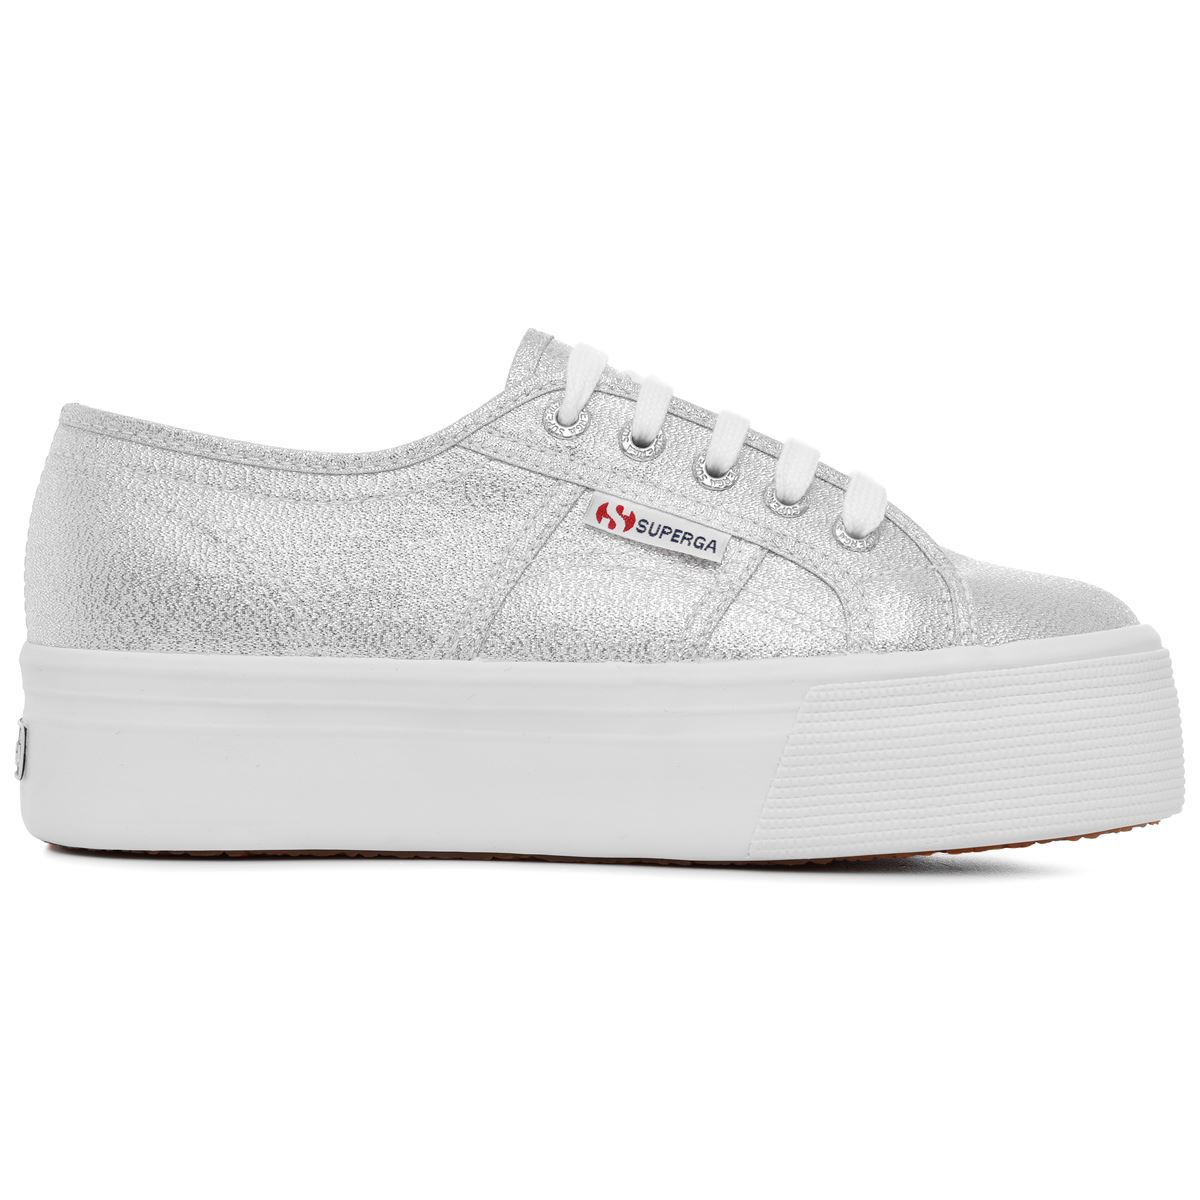 Alta qualit Scarpe Donna SUPERGA S009TC0 Primavera/Estate vendita